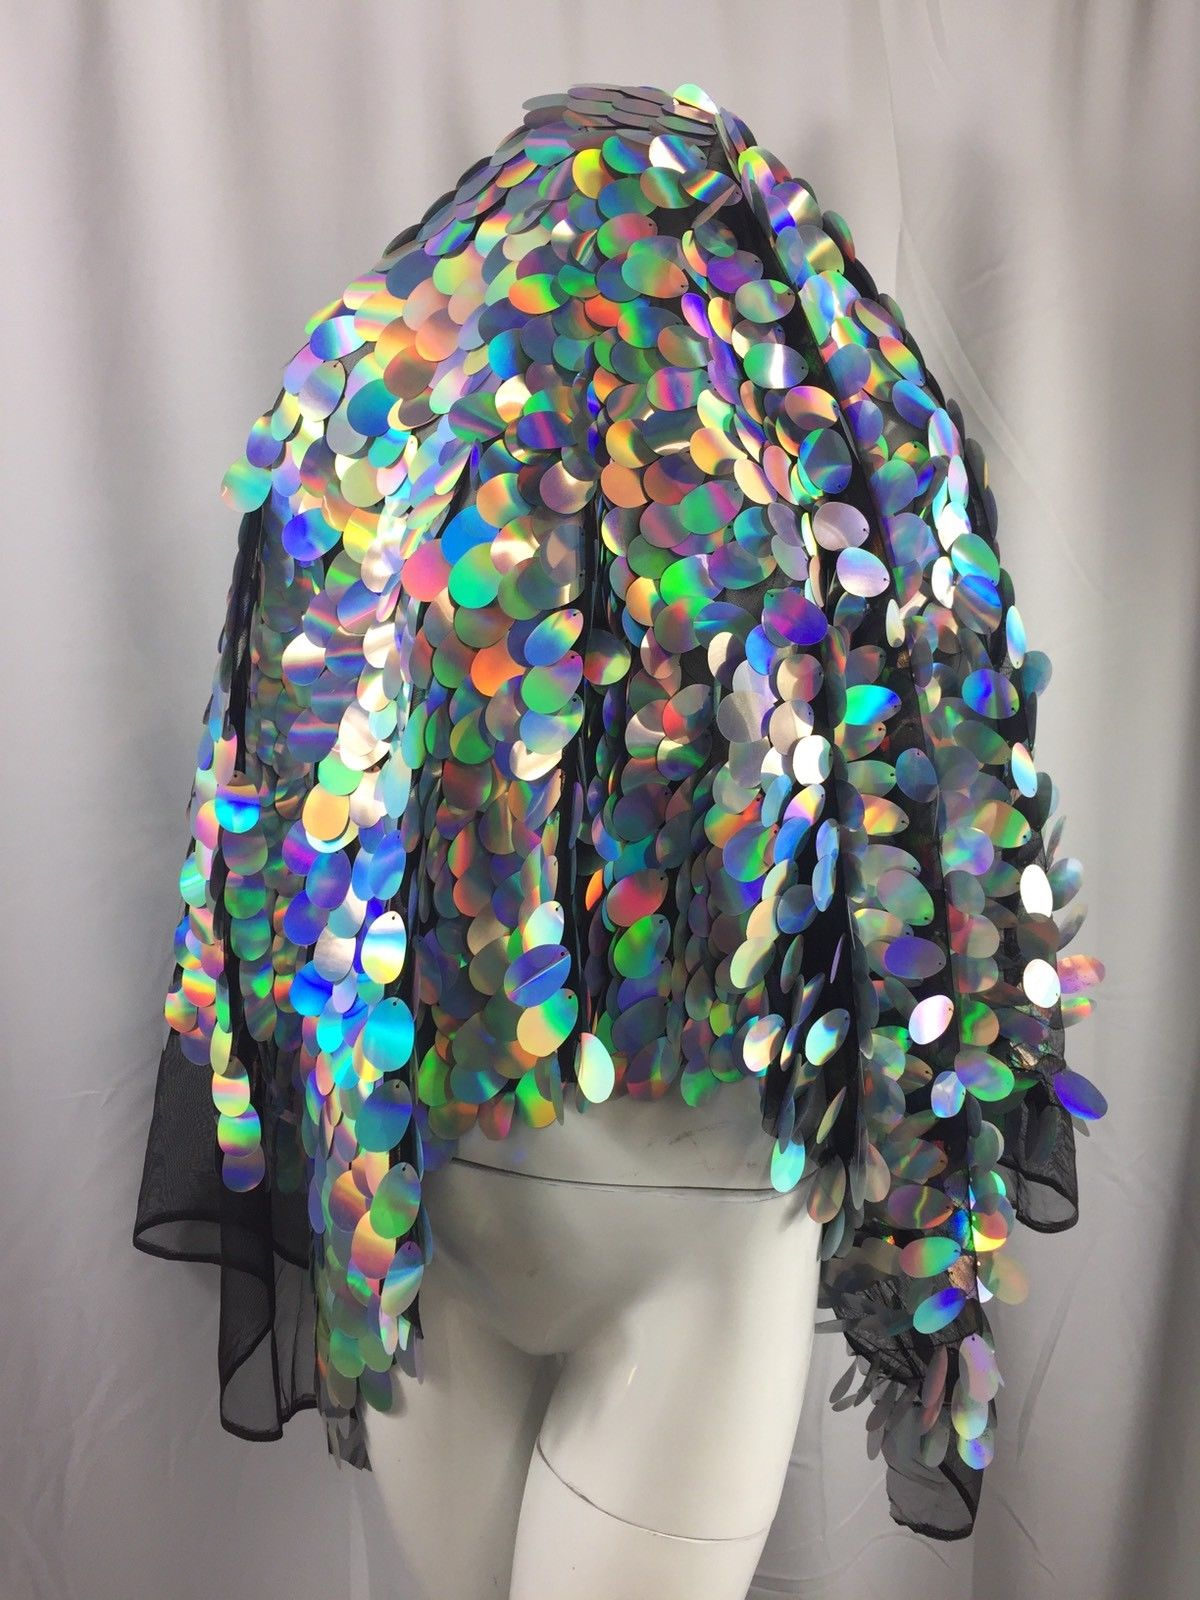 Hologram Sequins Fabric By The Yard Mesh Lace Multi-color 45 Inches Decoration - KINGDOM OF FABRICS